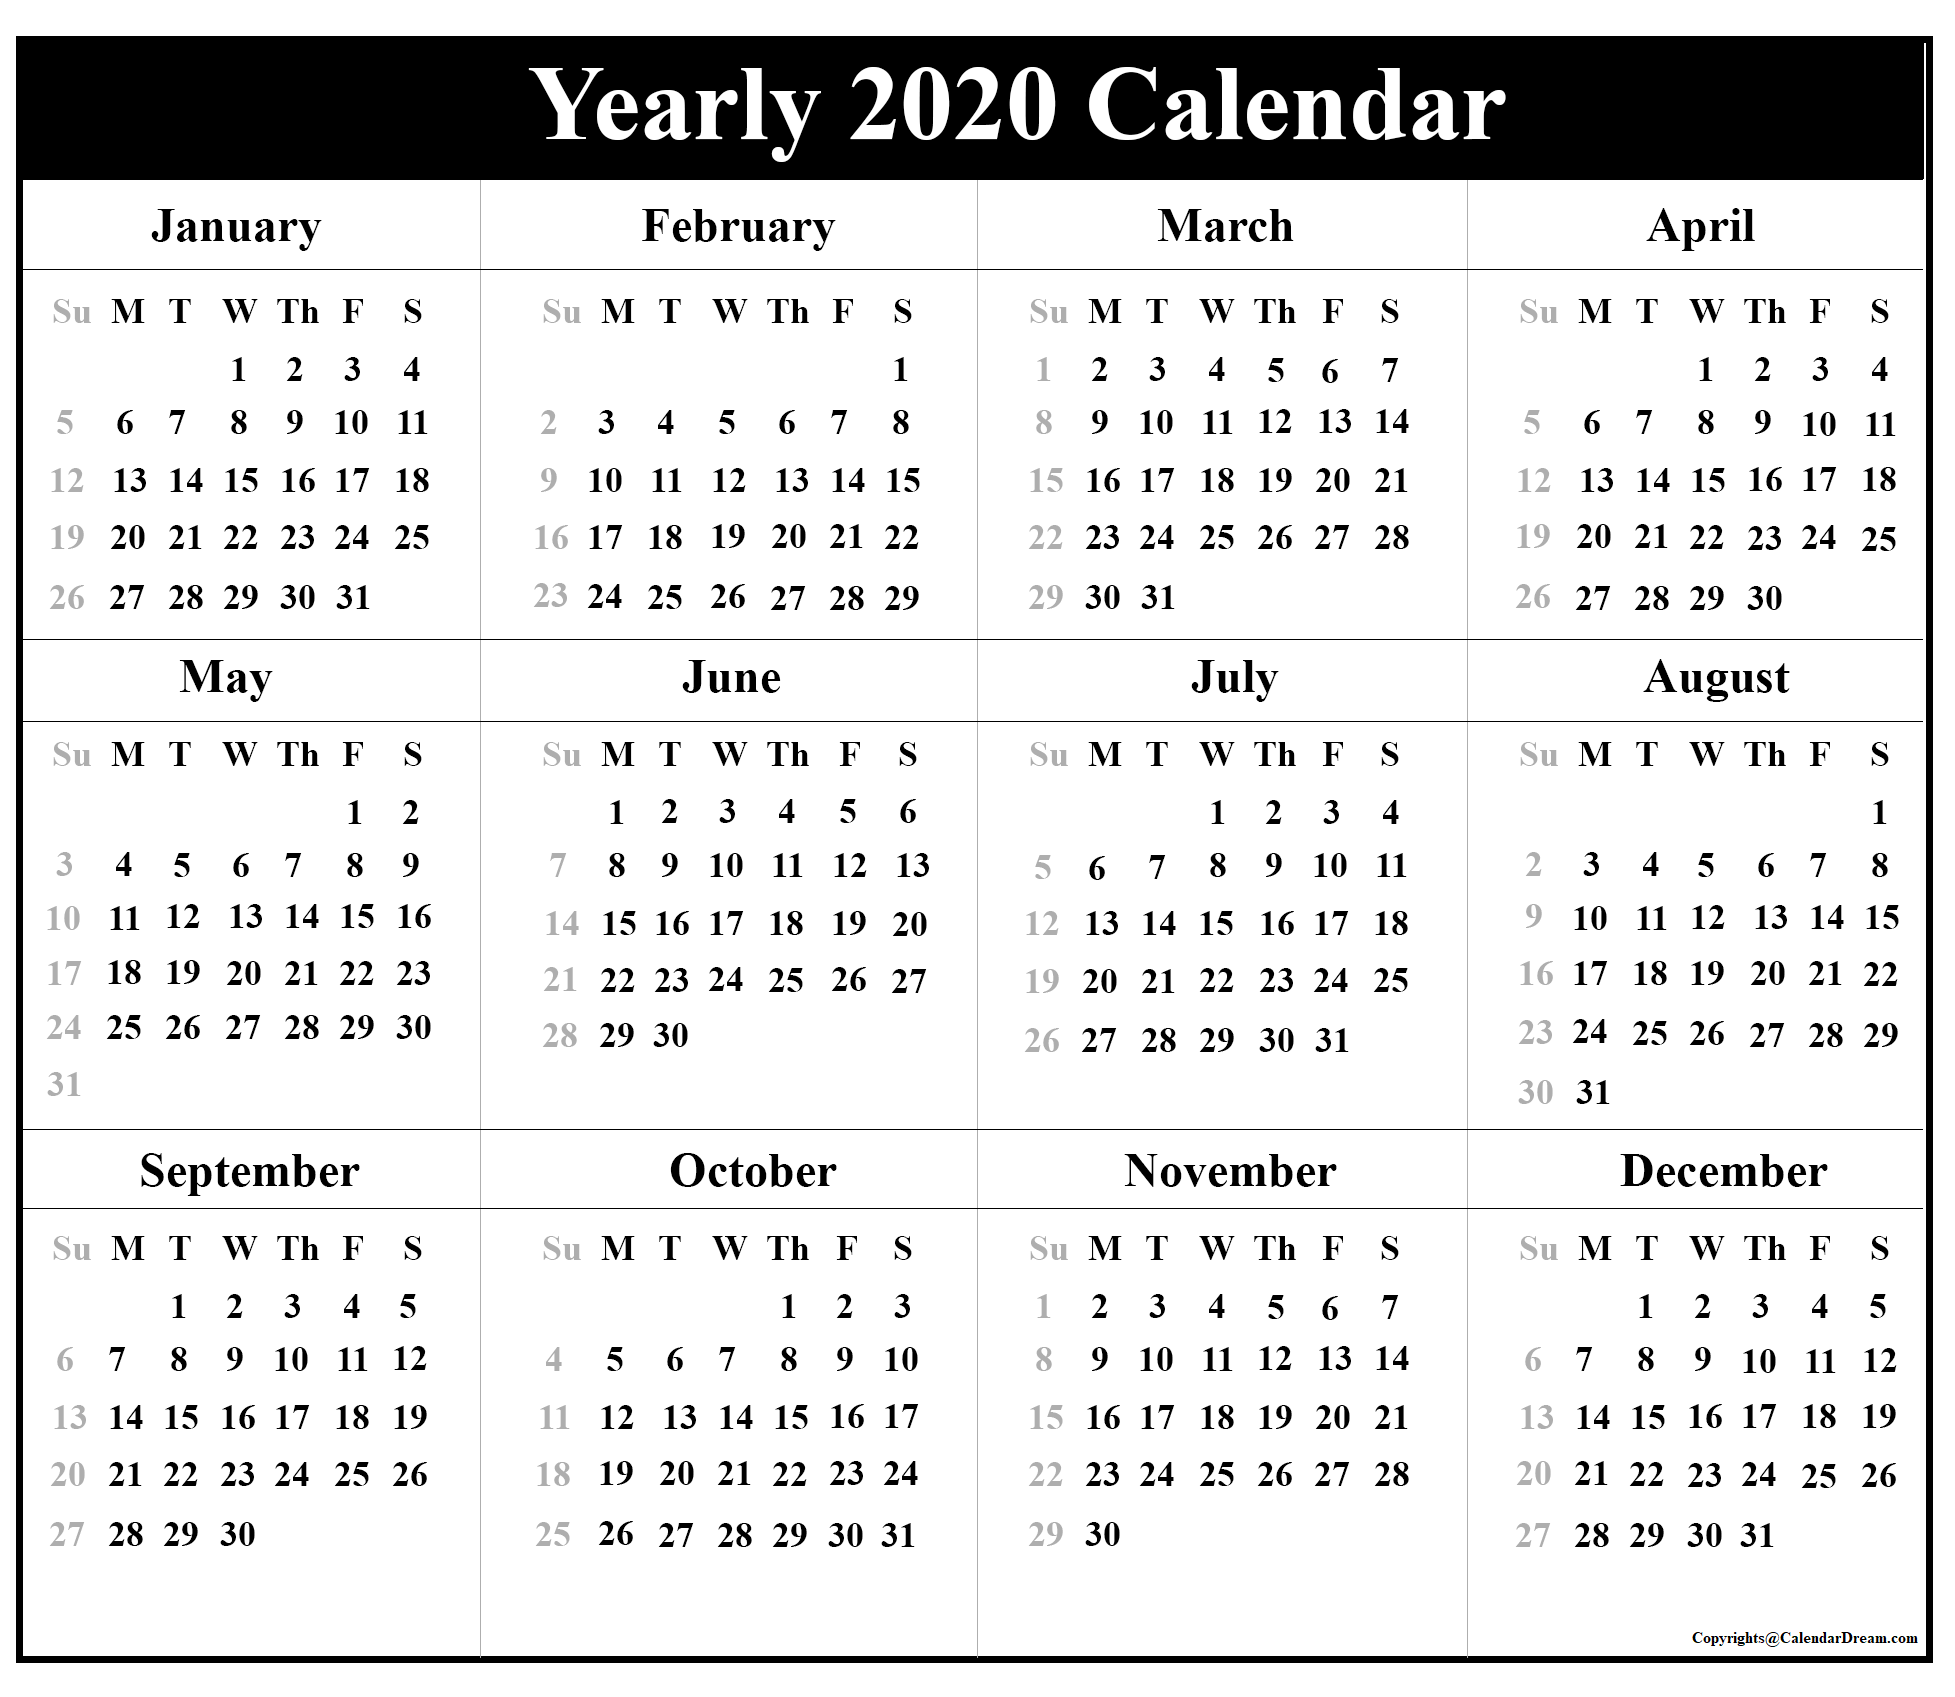 2020 Yearly Calendar Template